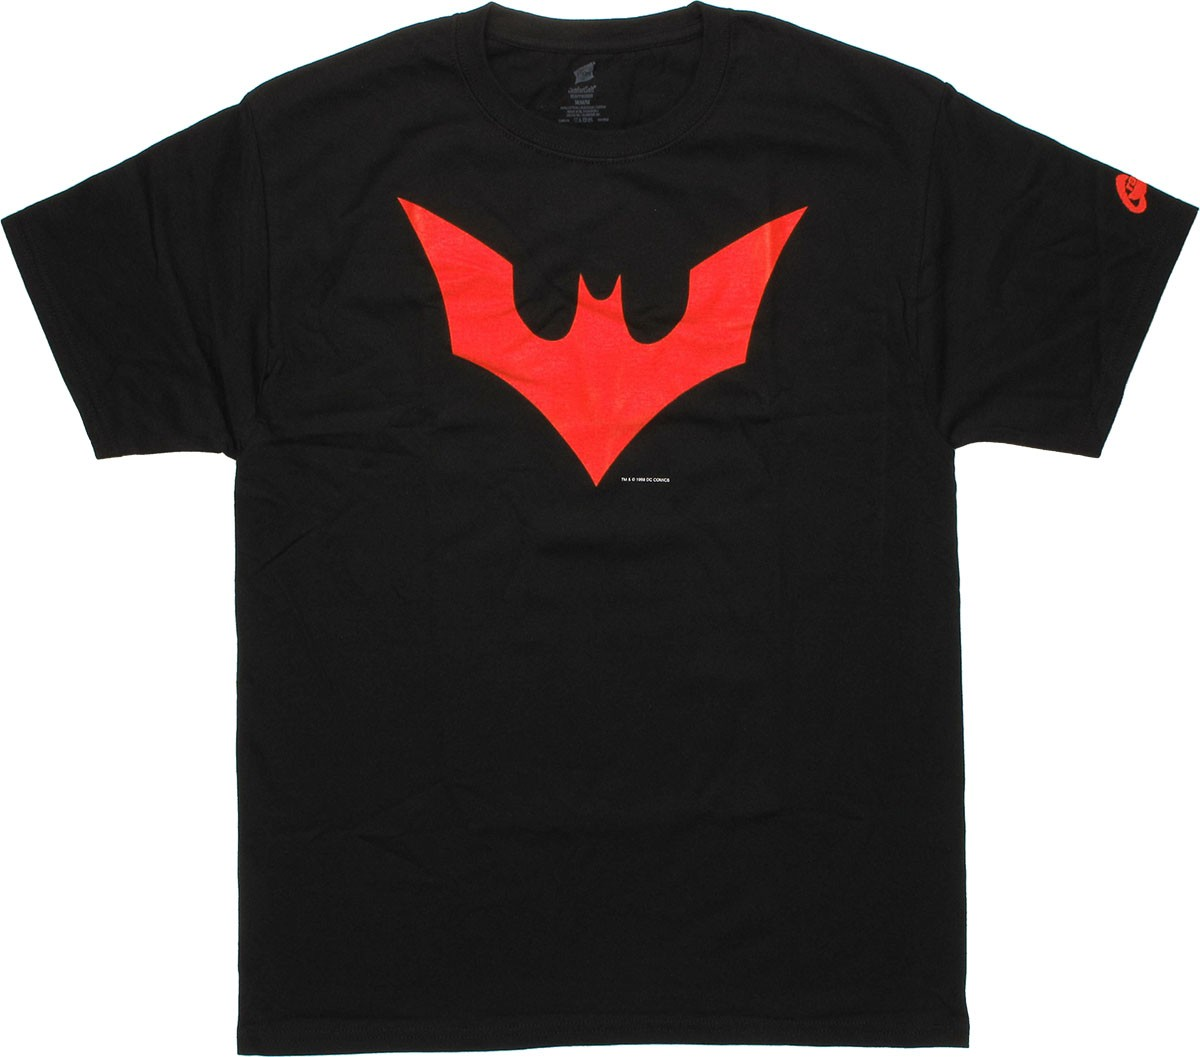 batman beyond t shirt. Black Bedroom Furniture Sets. Home Design Ideas